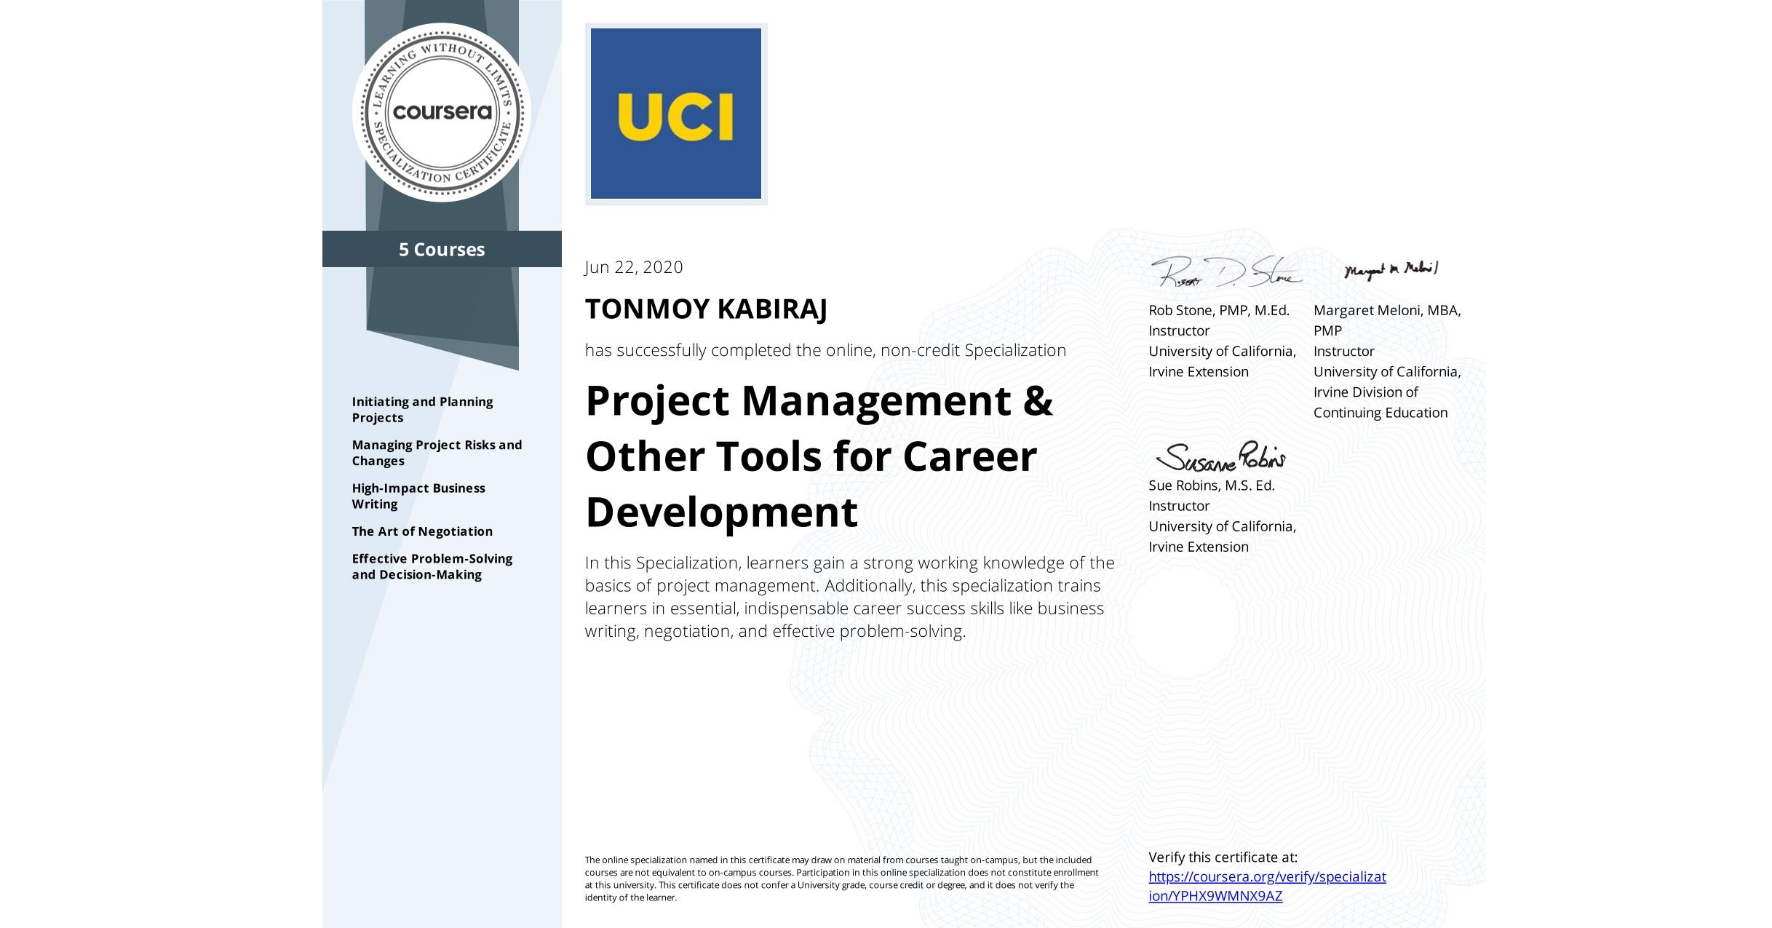 View certificate for TONMOY KABIRAJ, Project Management & Other Tools for Career Development, offered through Coursera. In this Specialization, learners gain a strong working knowledge of the basics of project management. Additionally, this specialization trains learners in essential, indispensable career success skills like business writing, negotiation, and effective problem-solving.